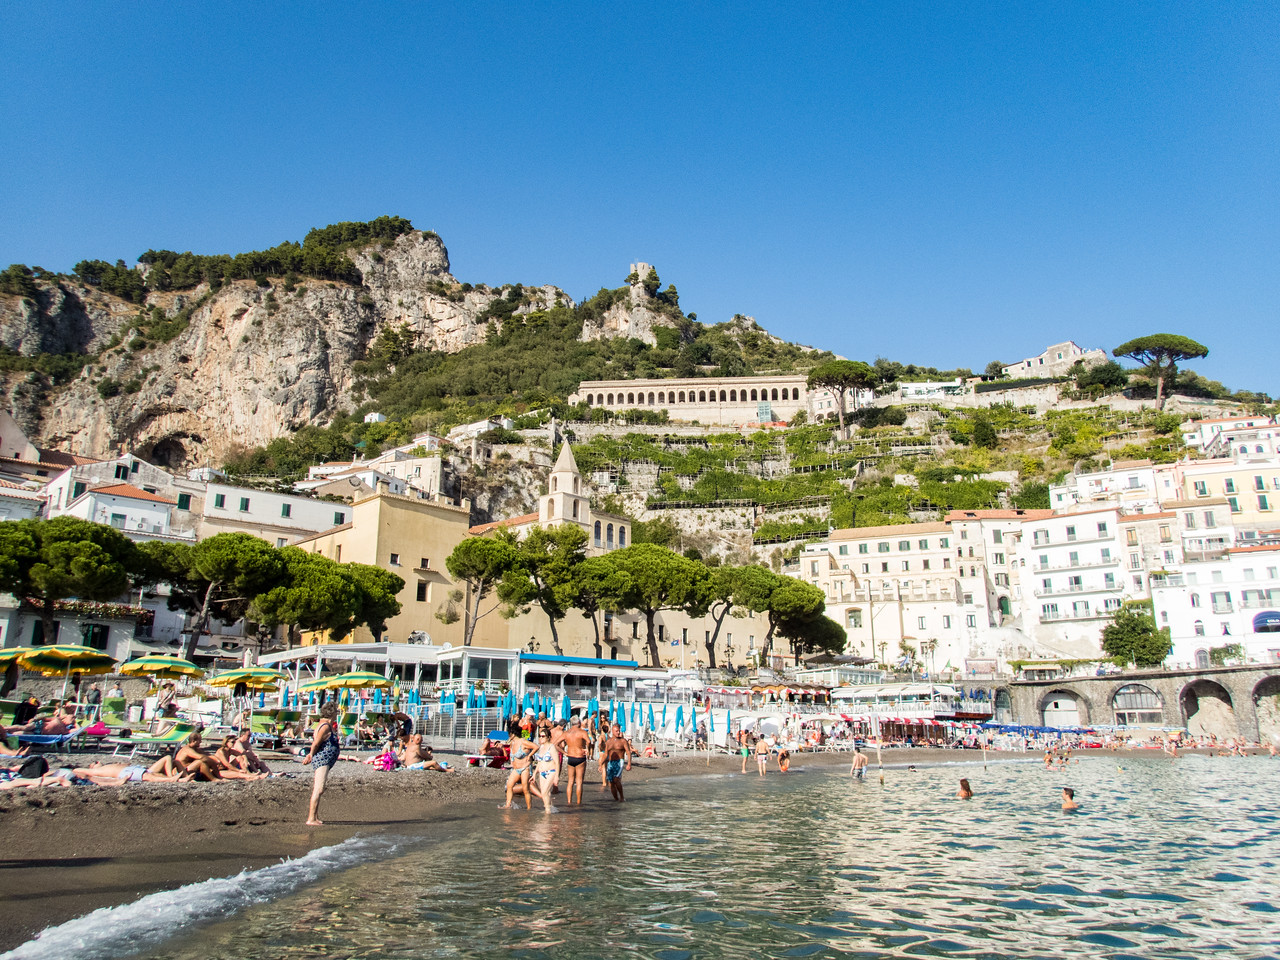 At the beach in Amalfi.